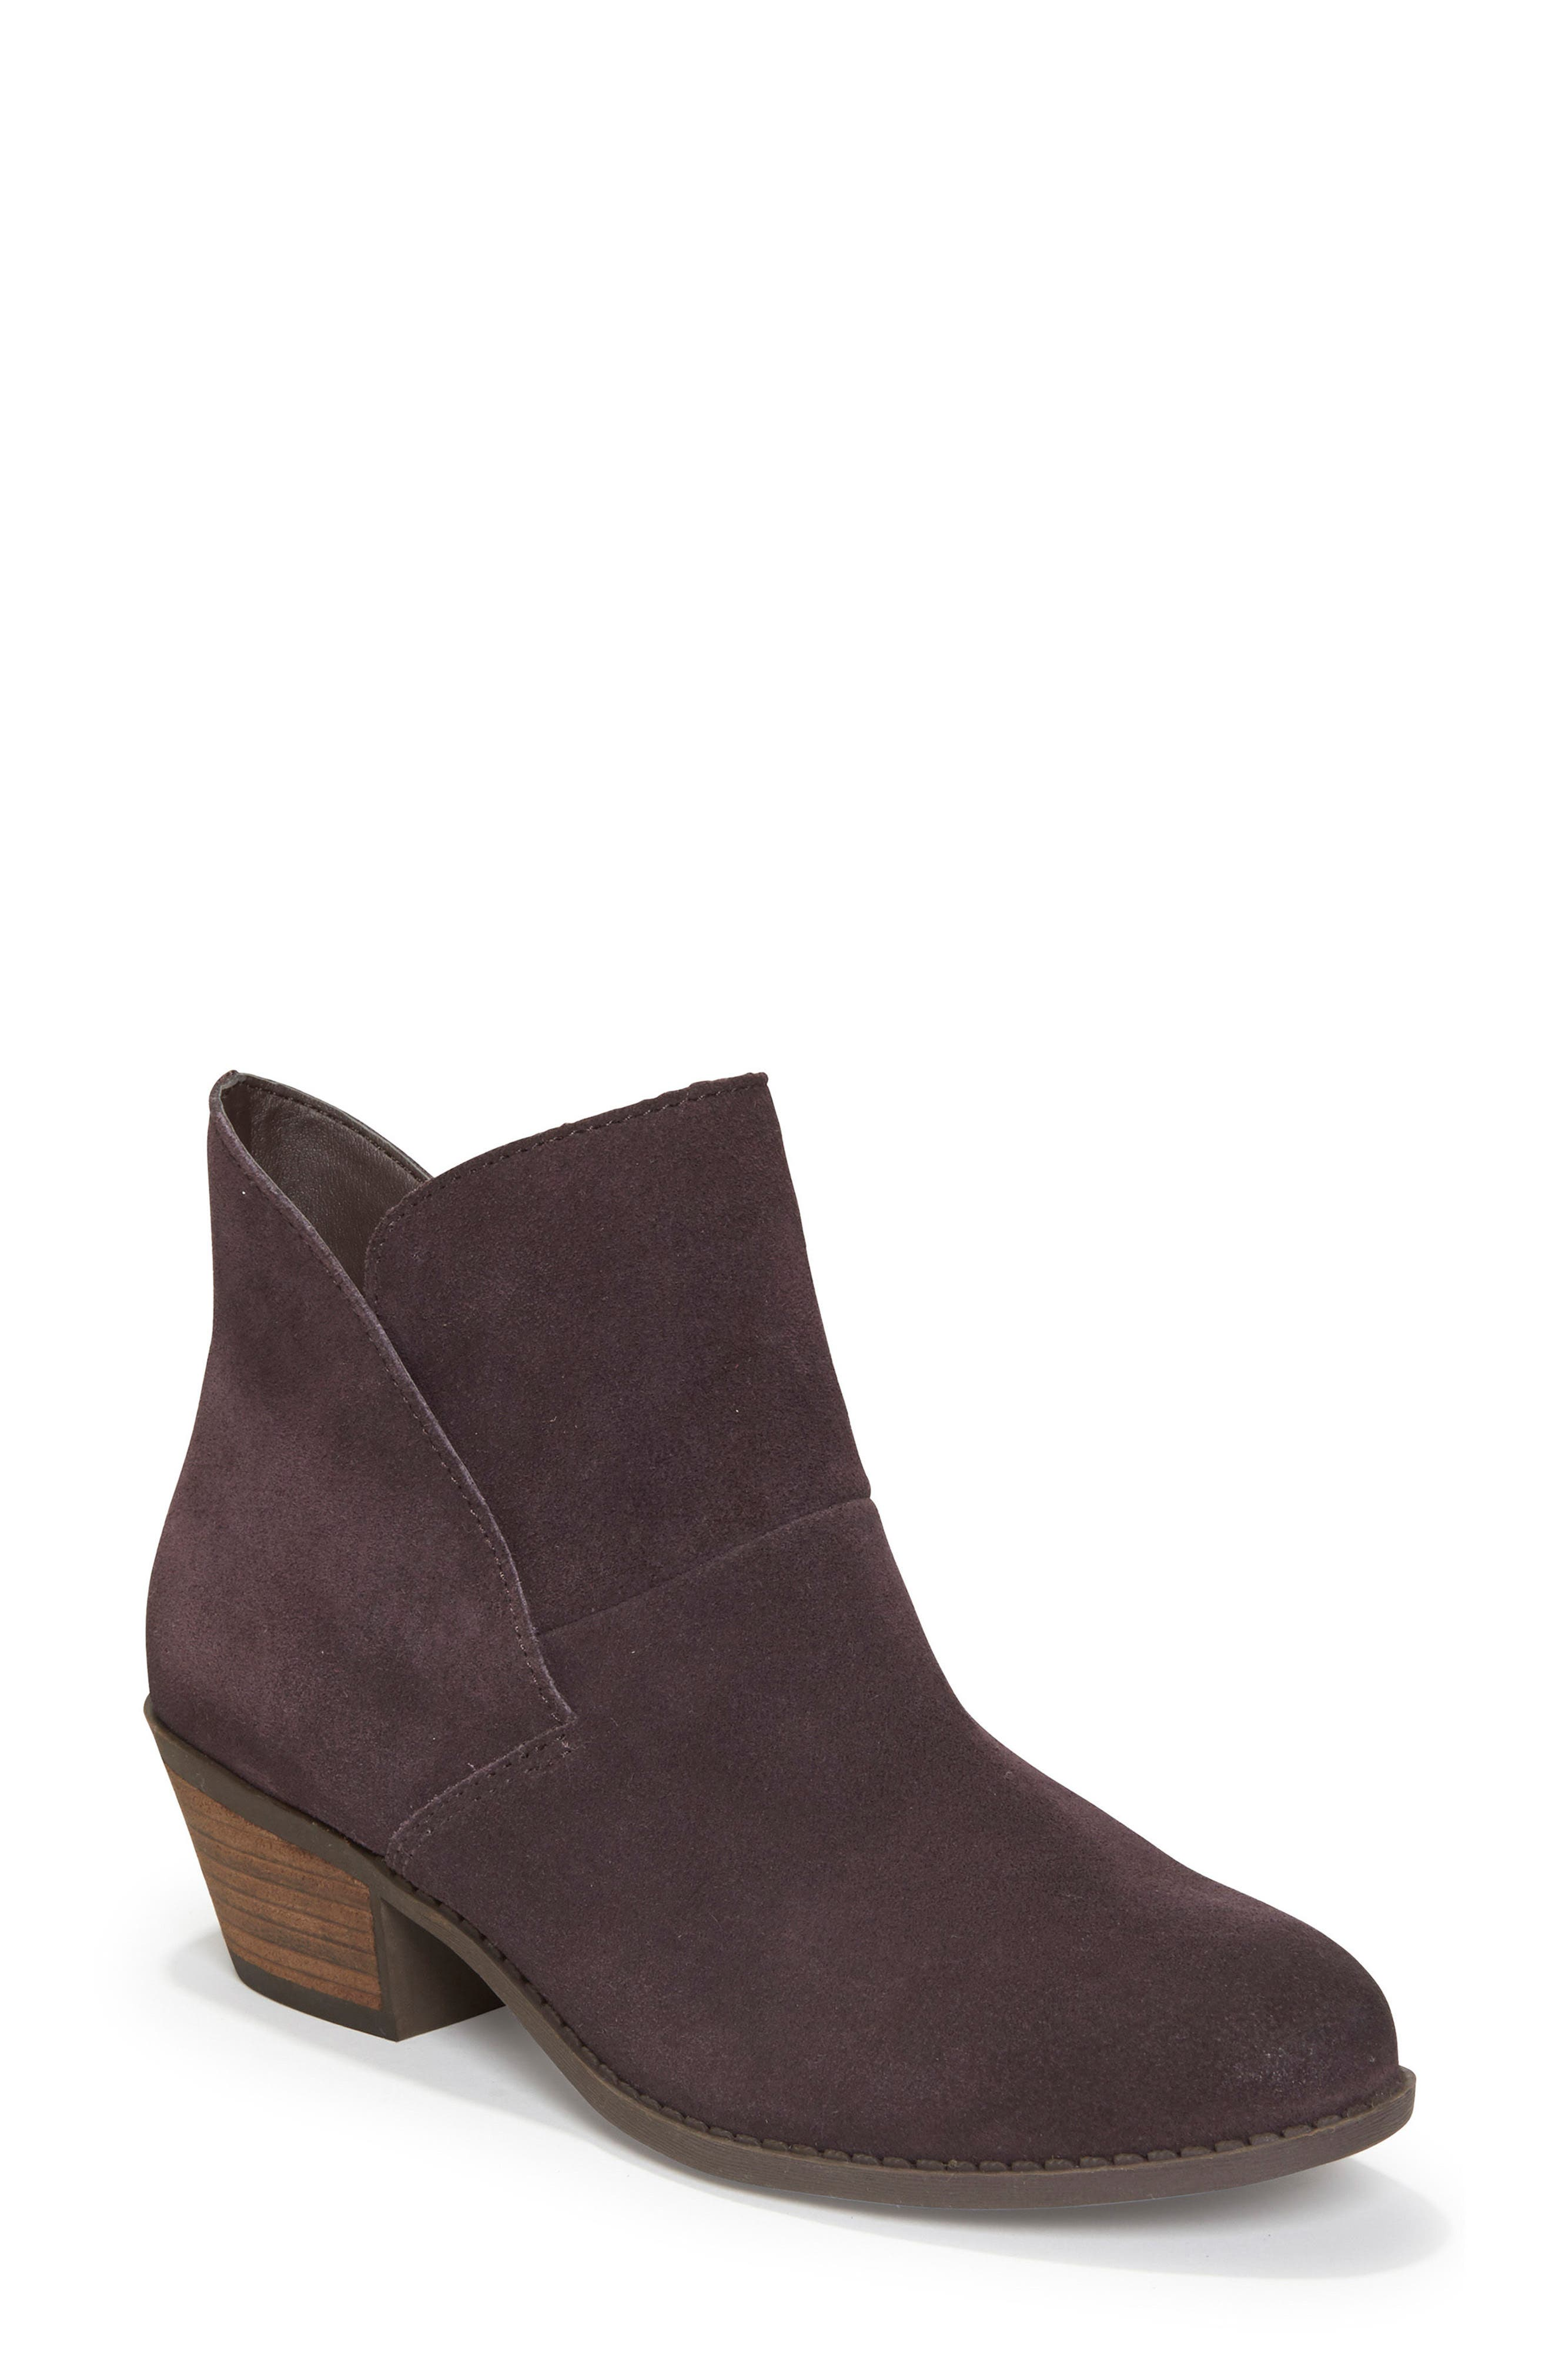 Zena Ankle Boot,                             Main thumbnail 1, color,                             Dark Ruby Suede